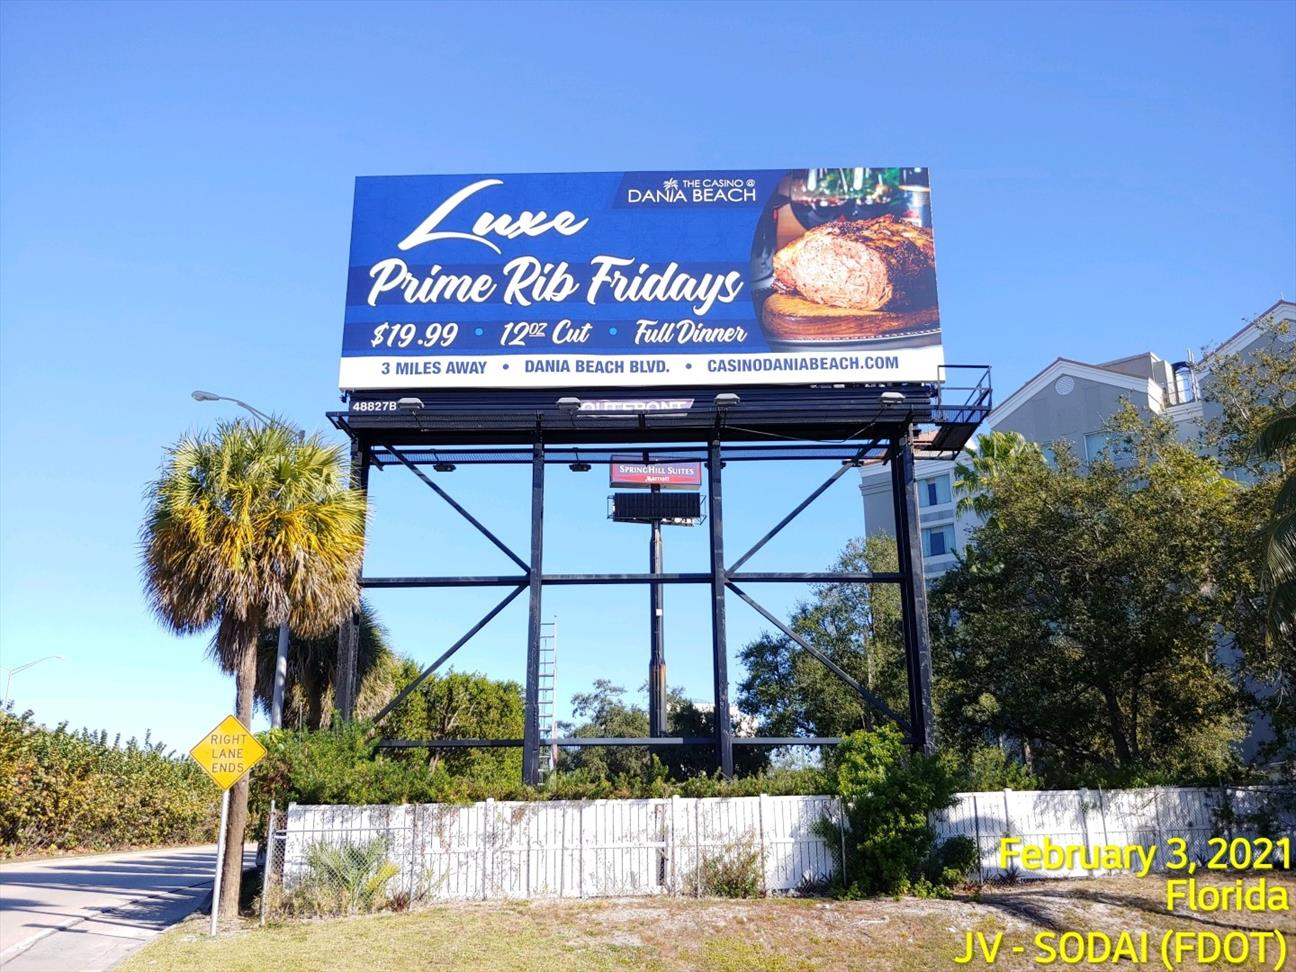 FDOT - Office of Right of Way - Outdoor Advertising Database